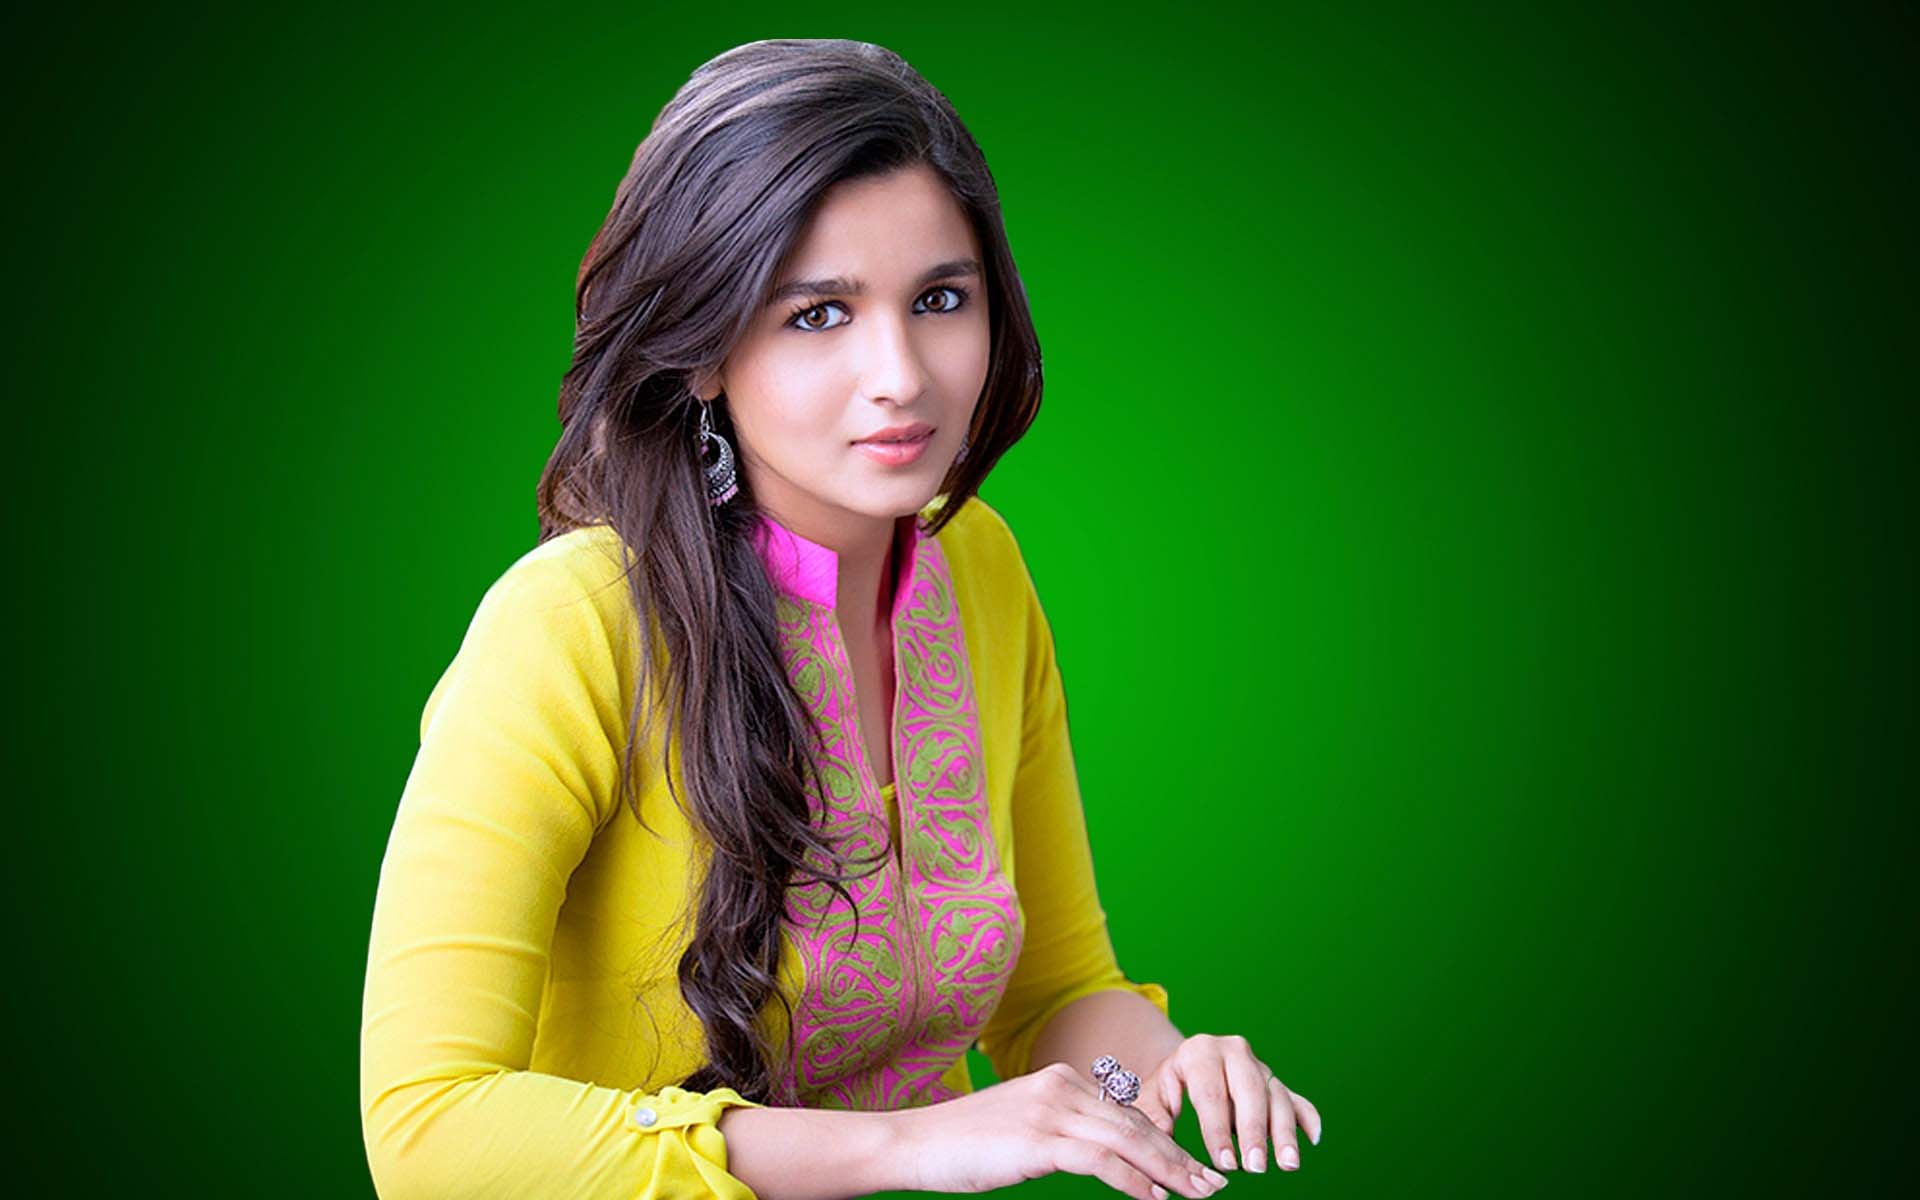 Alia Bhatt in Beautiful Dress Full HD Wallpapers 1080p